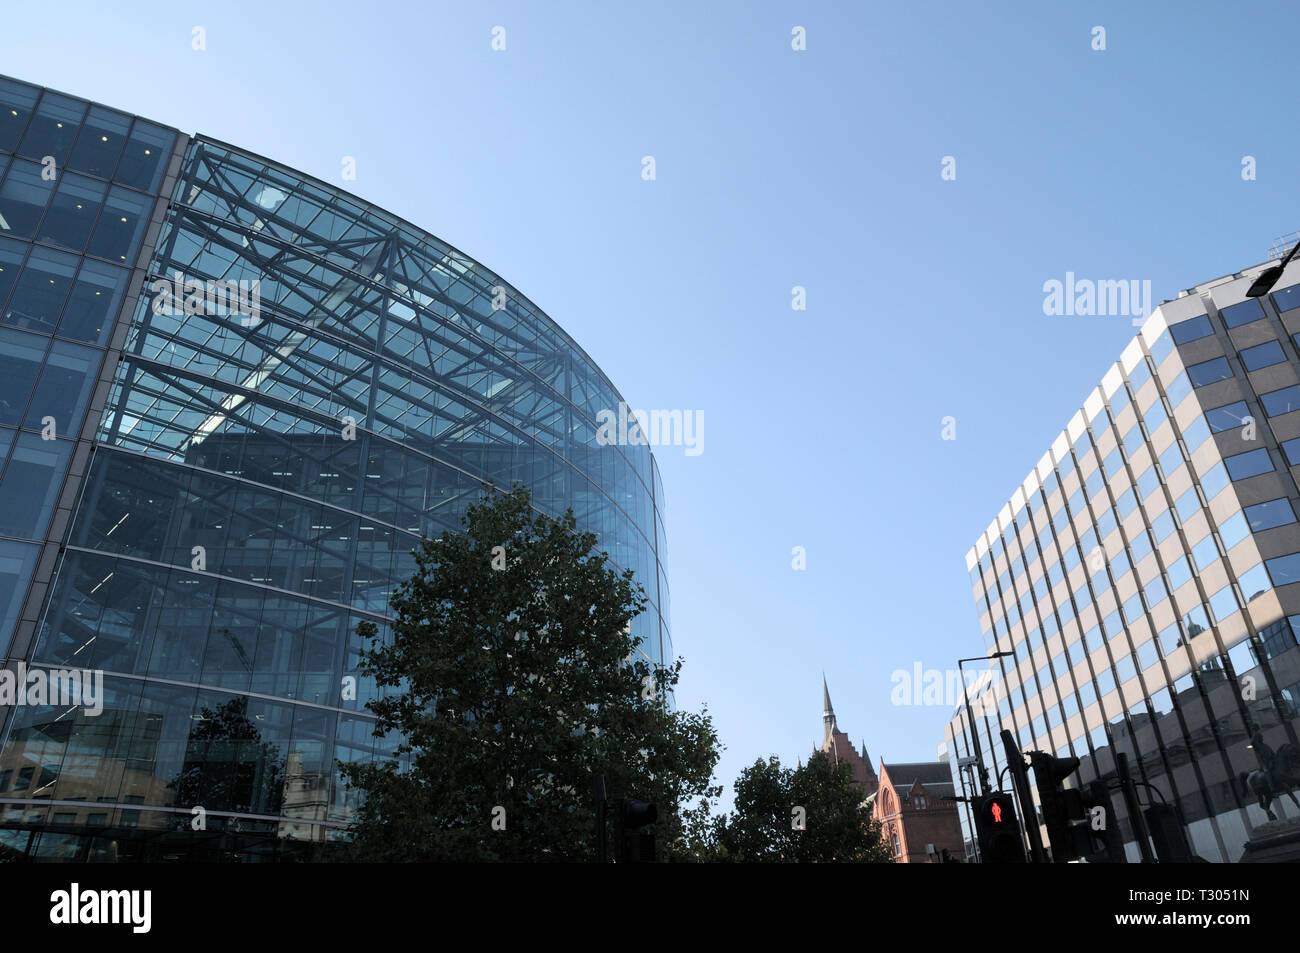 Architecture in Holborn, London.  (Left to right) Sainsbury's HQ, Holborn Bars (formerly Prudential Assurance Building) and Pareto Law offices. - Stock Image